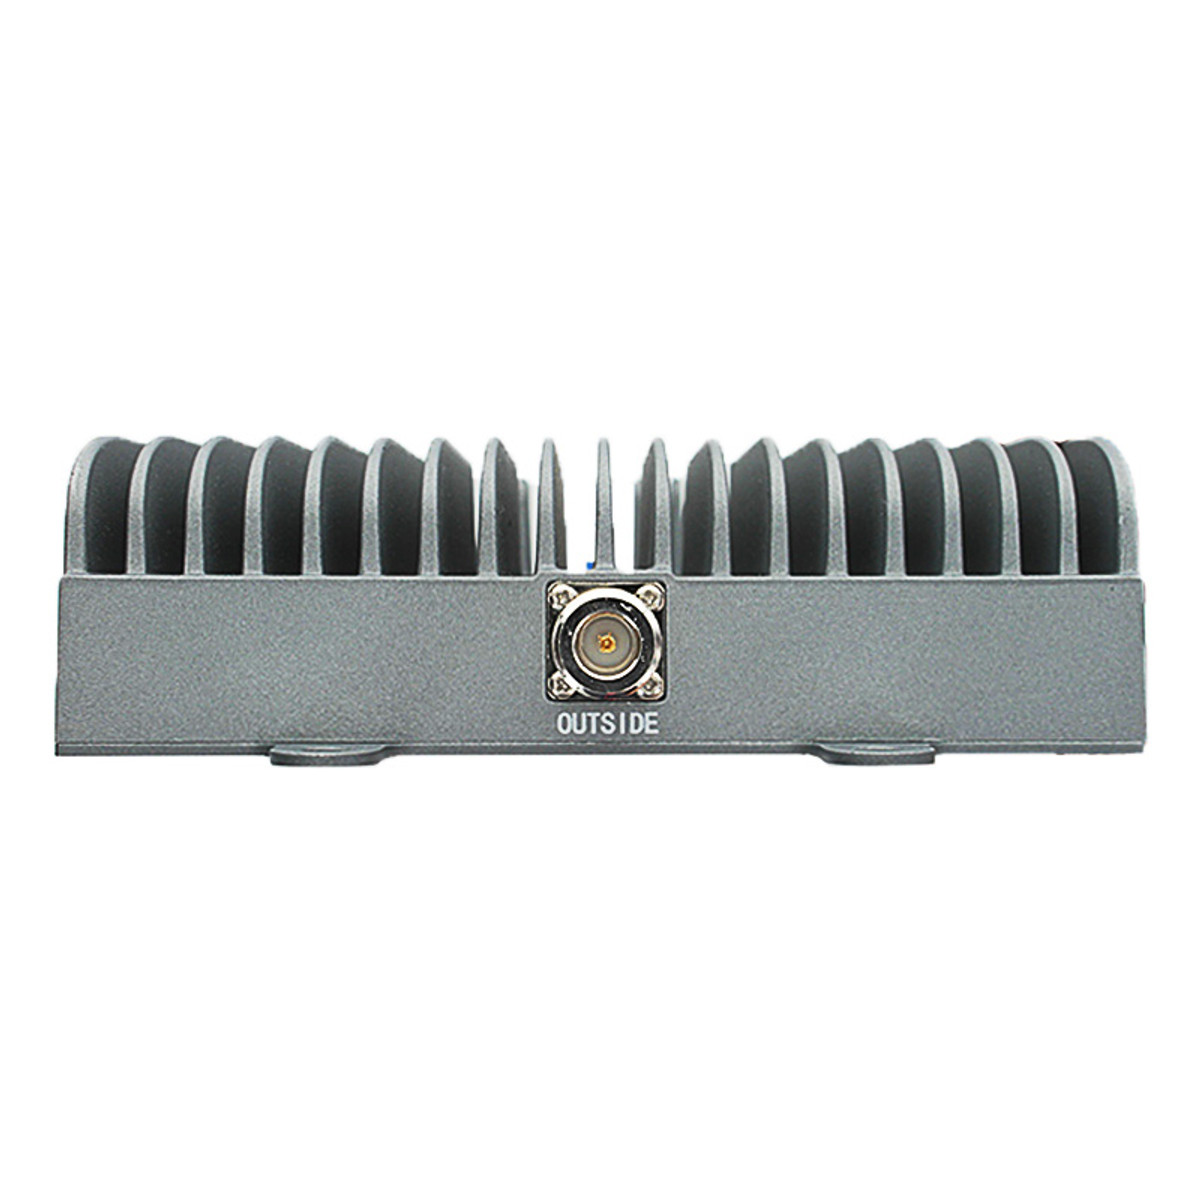 SureCall Fusion5S Signal Booster with Inside & Outside Antennas (SC-PolyH/OS-72-OD-KIT)   Bottom View